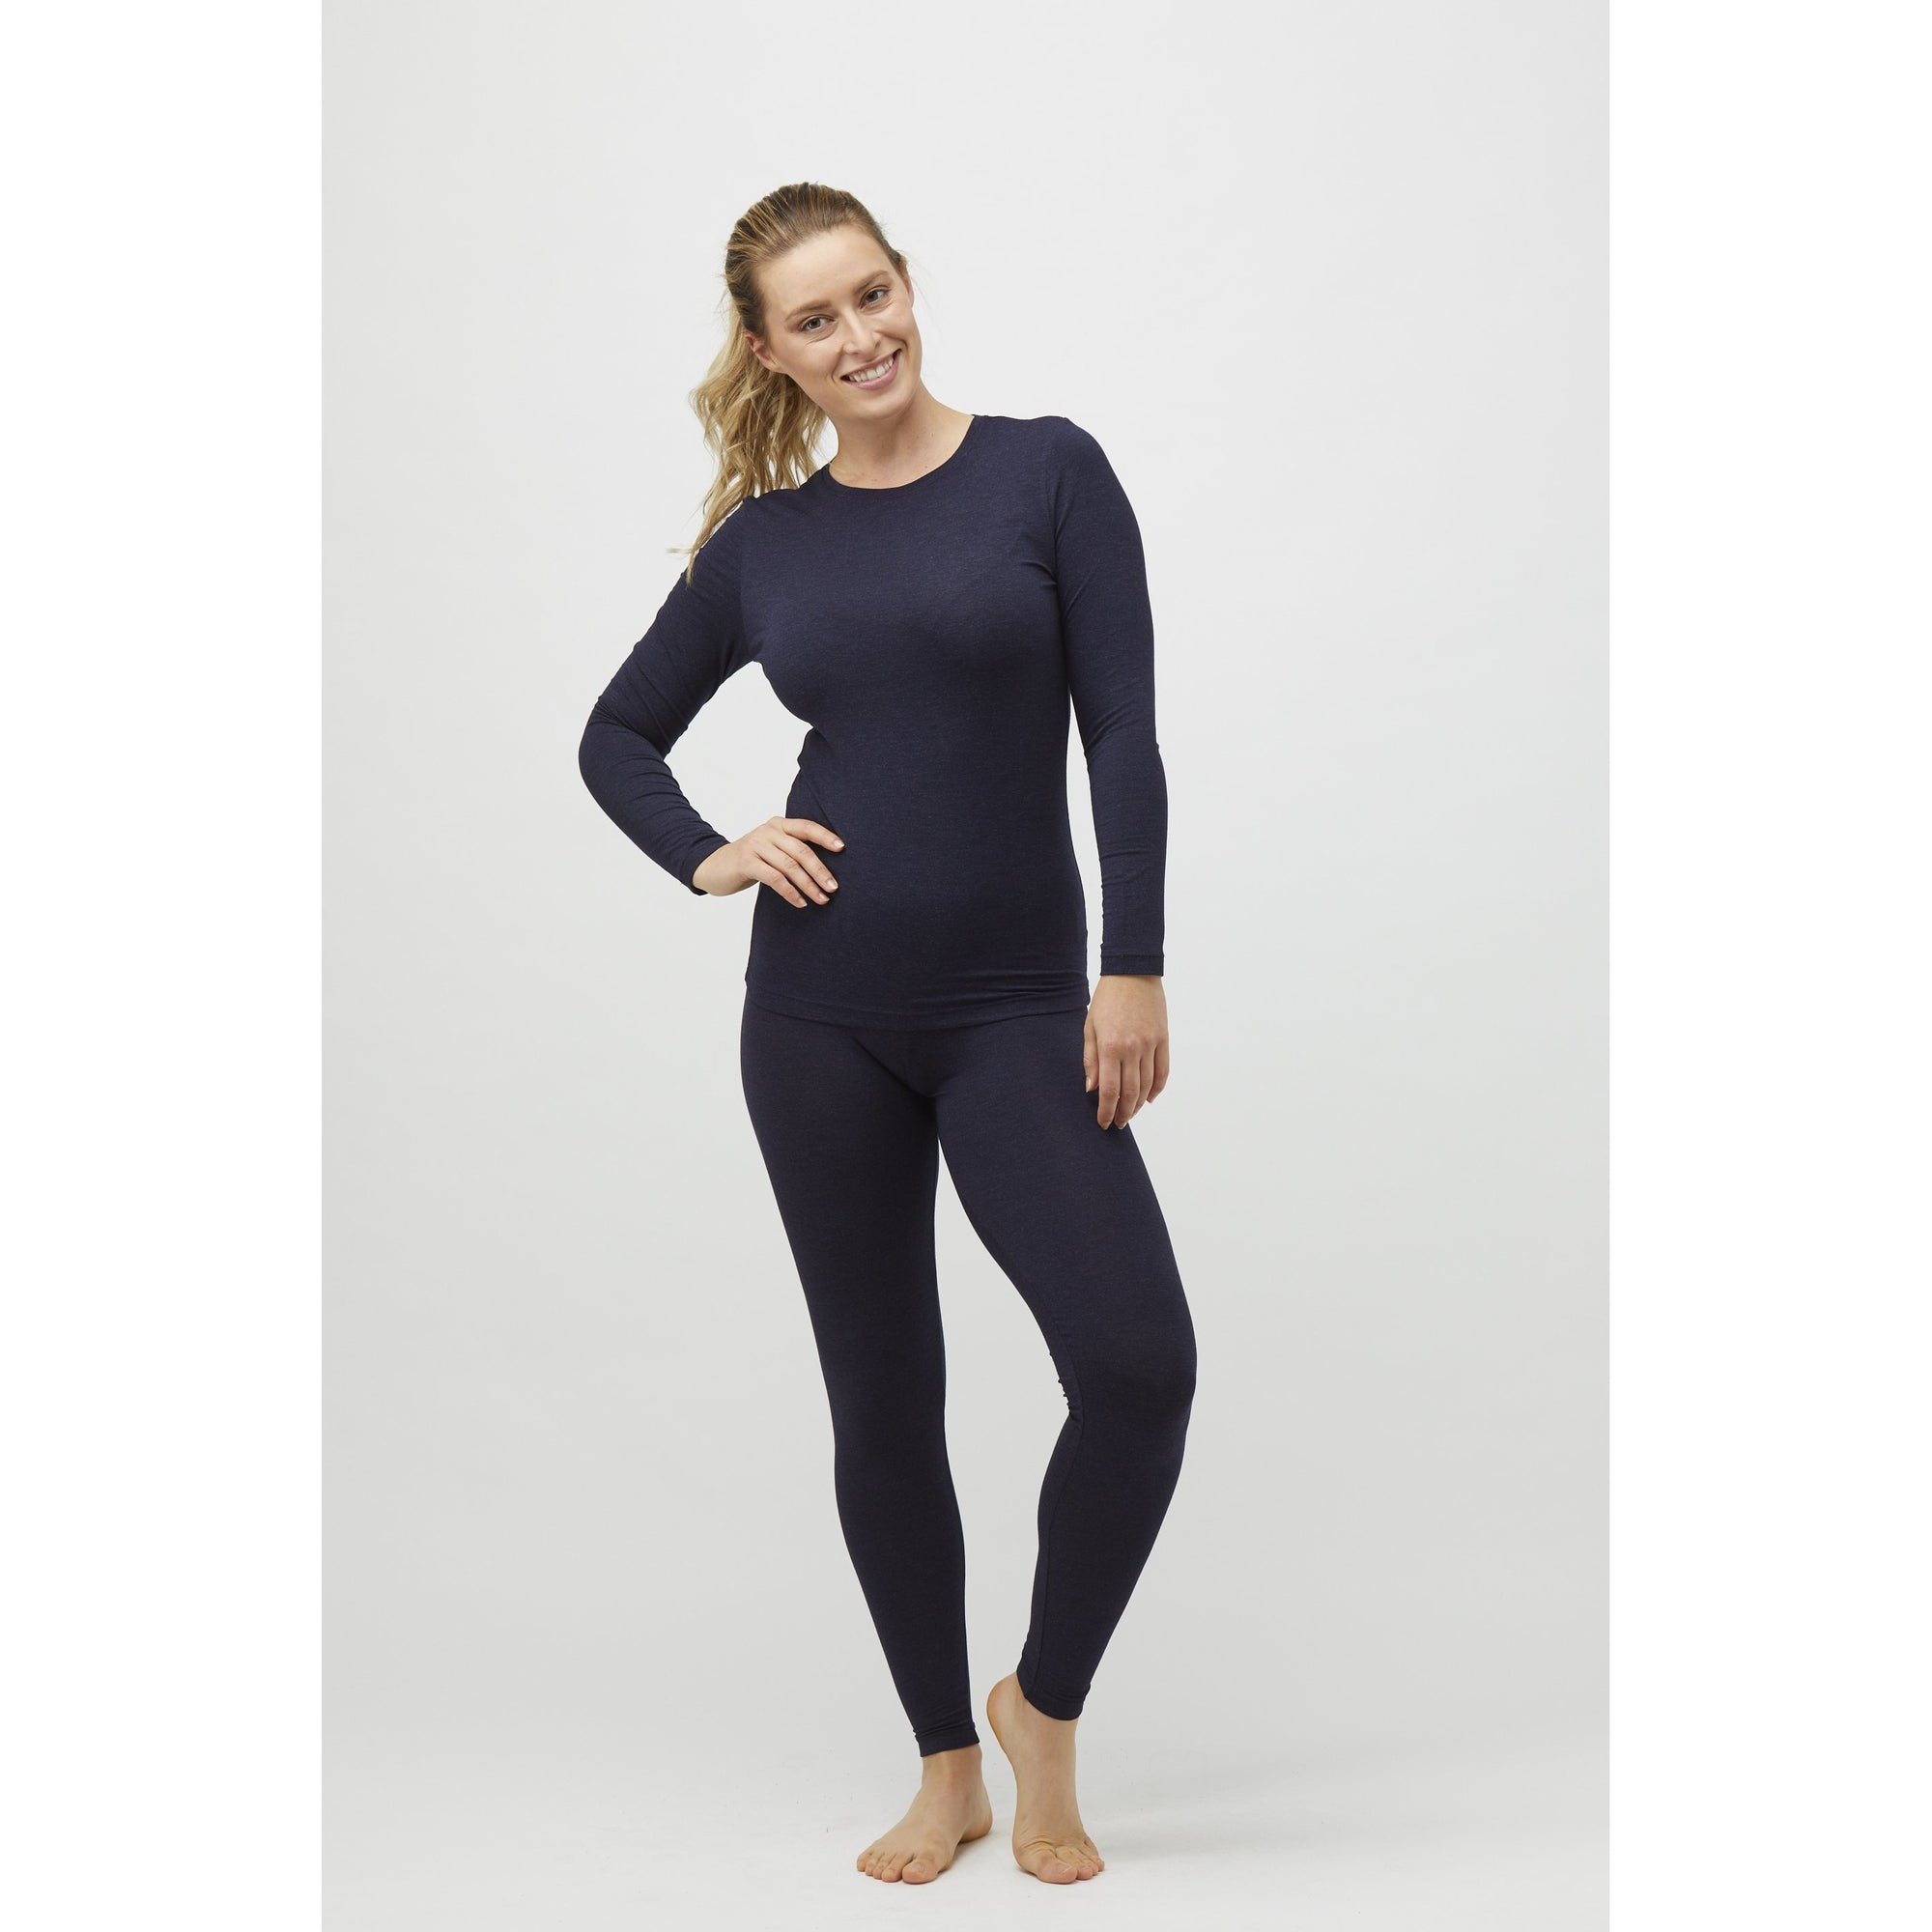 Tani Full length Leggings in Midnight Marle